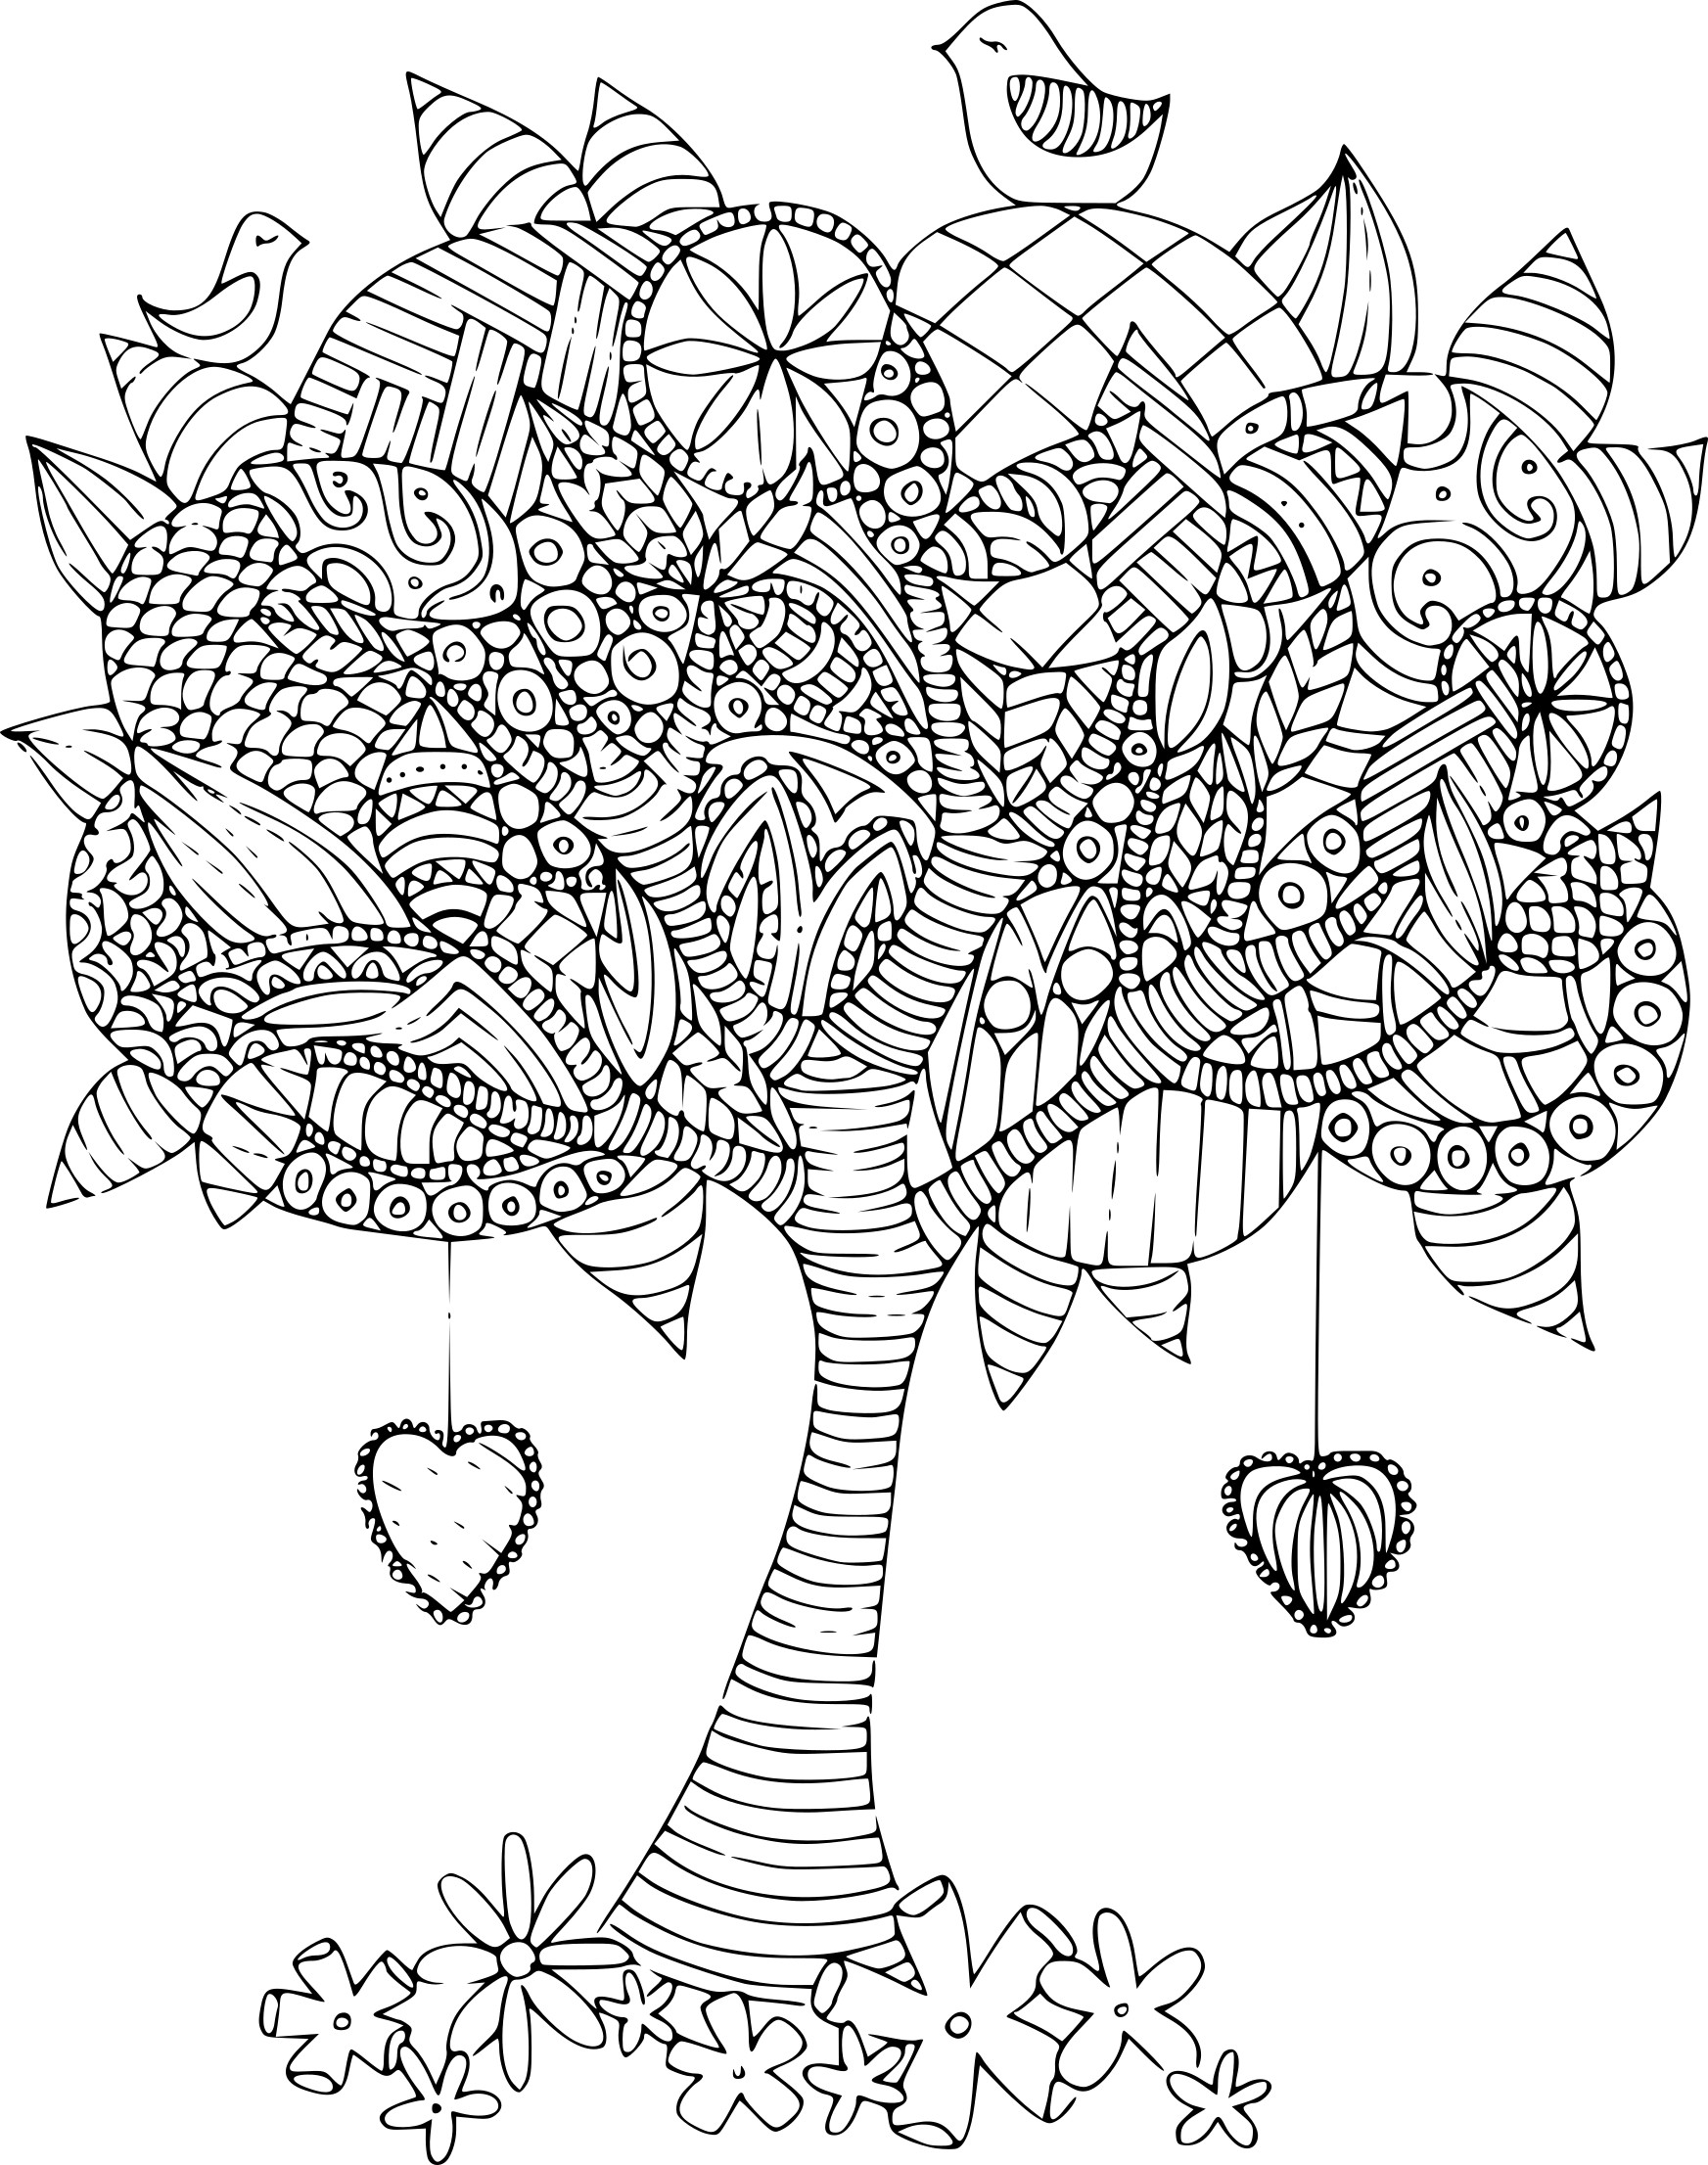 Coloriage Arbre Anti Stress.Coloriage Arbre Adulte A Imprimer